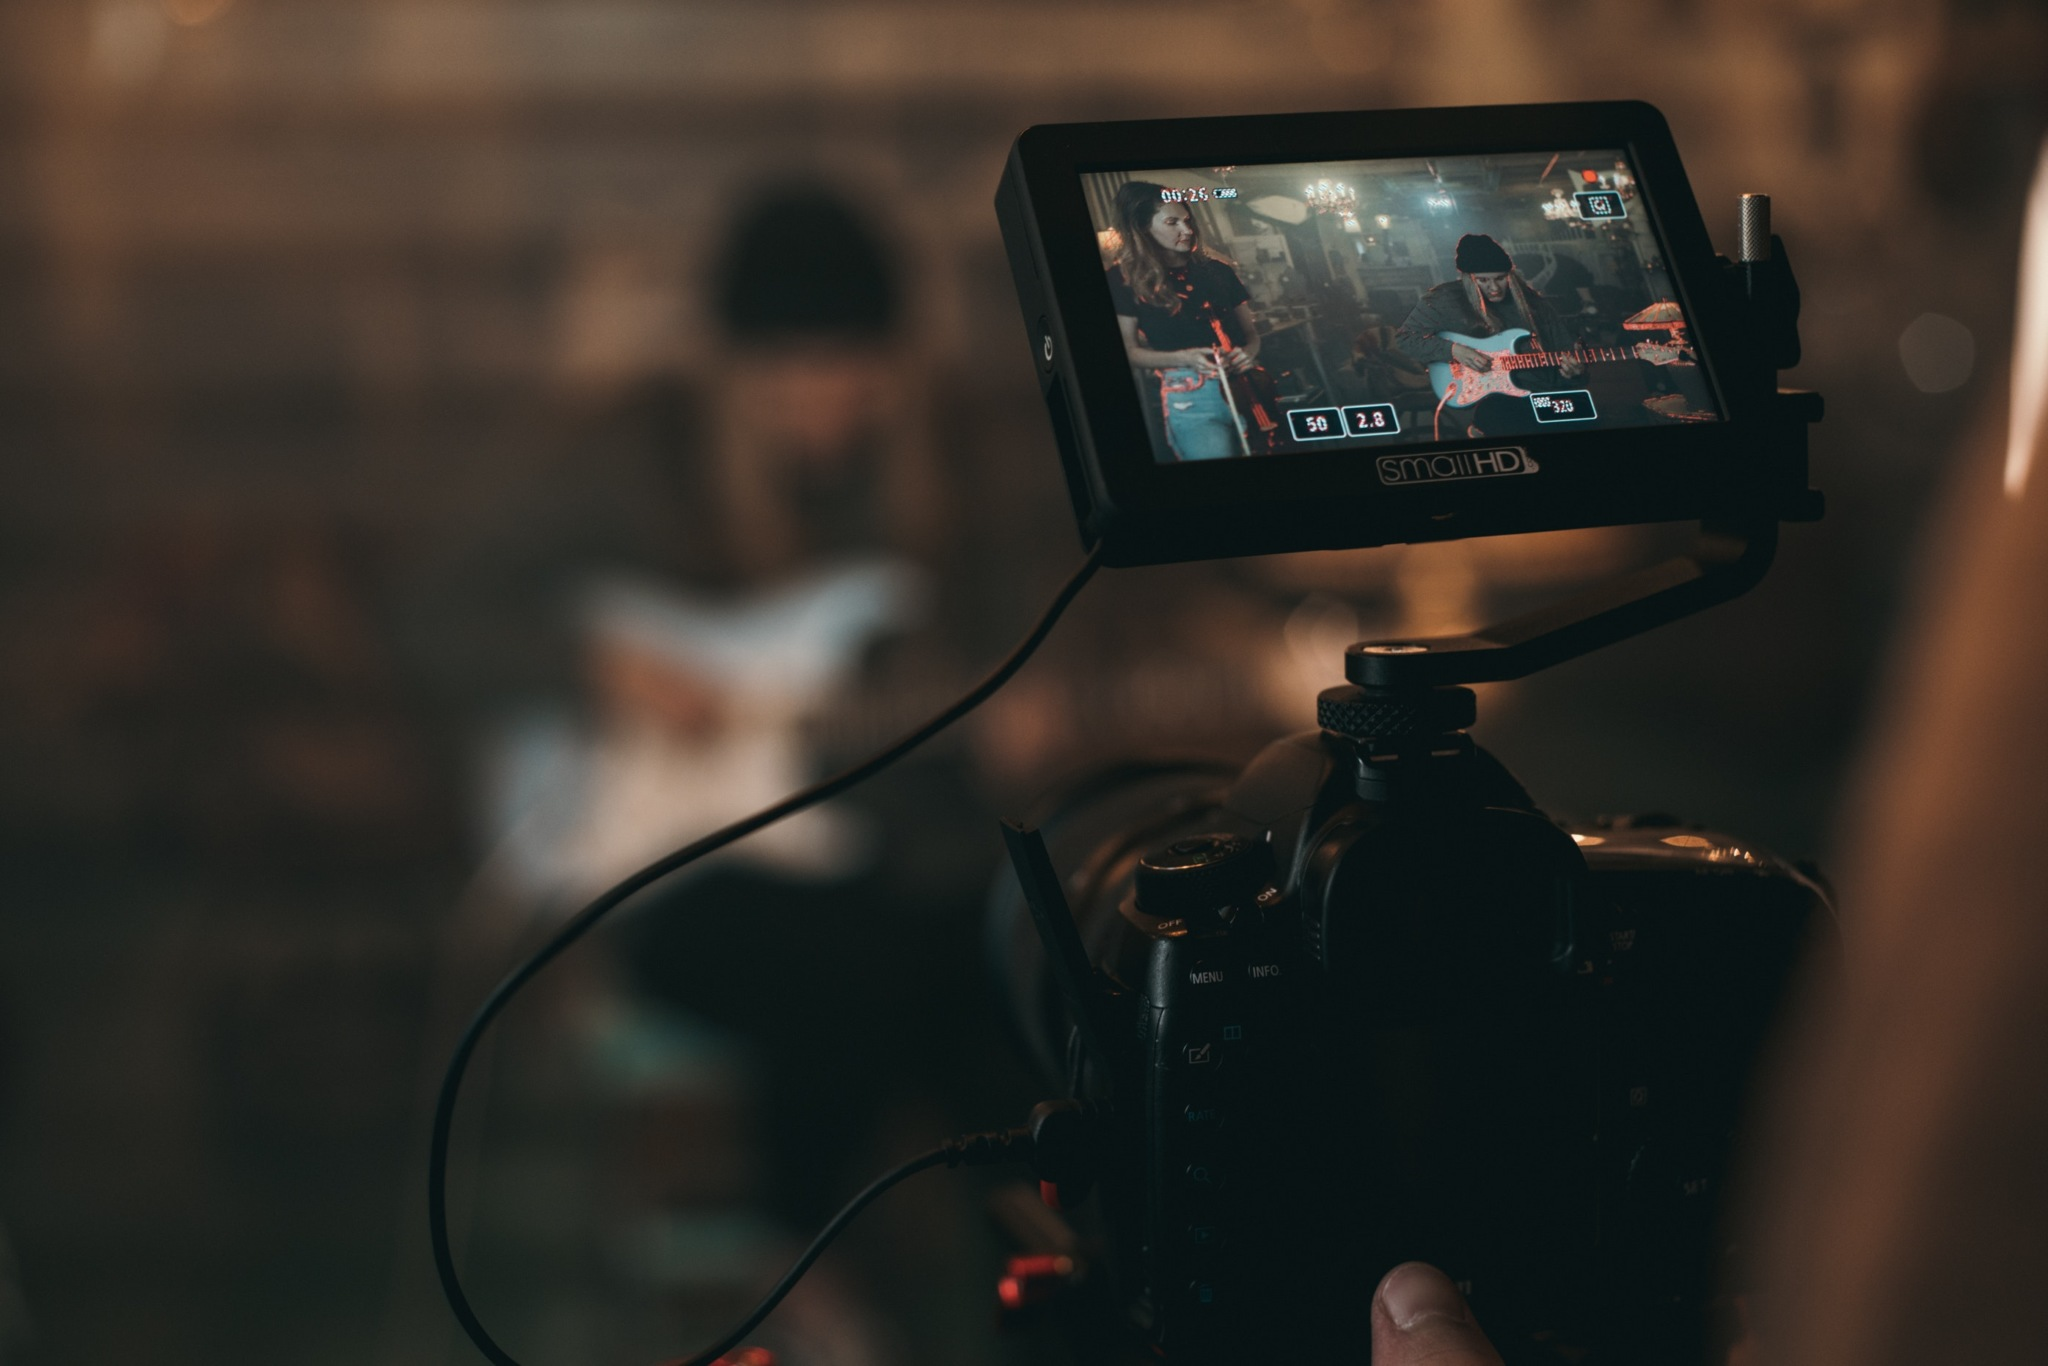 Shooting a video of someone playing guitar